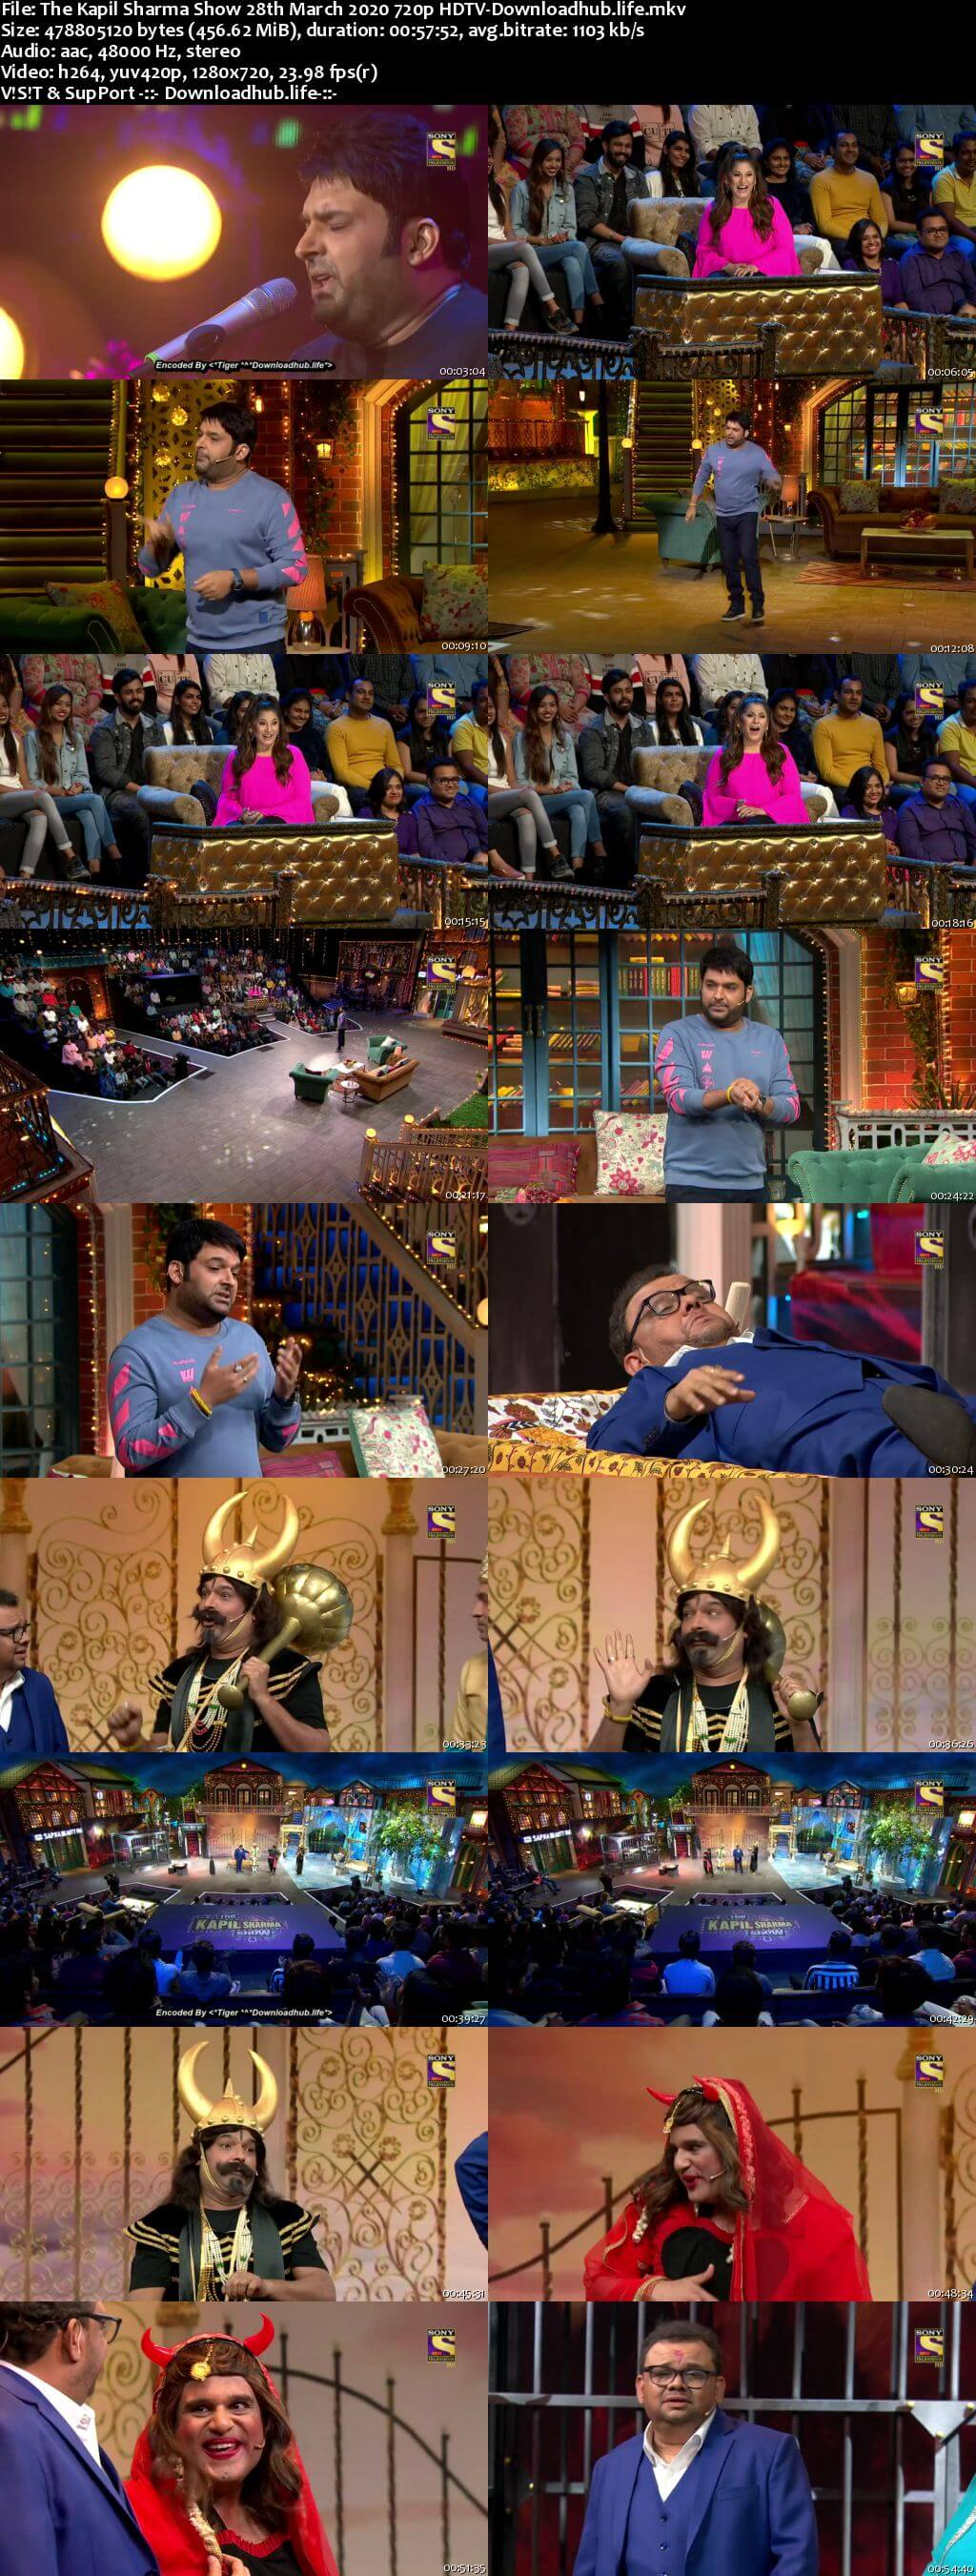 The Kapil Sharma Show 28 March 2020 Episode 126 HDTV 720p 480p